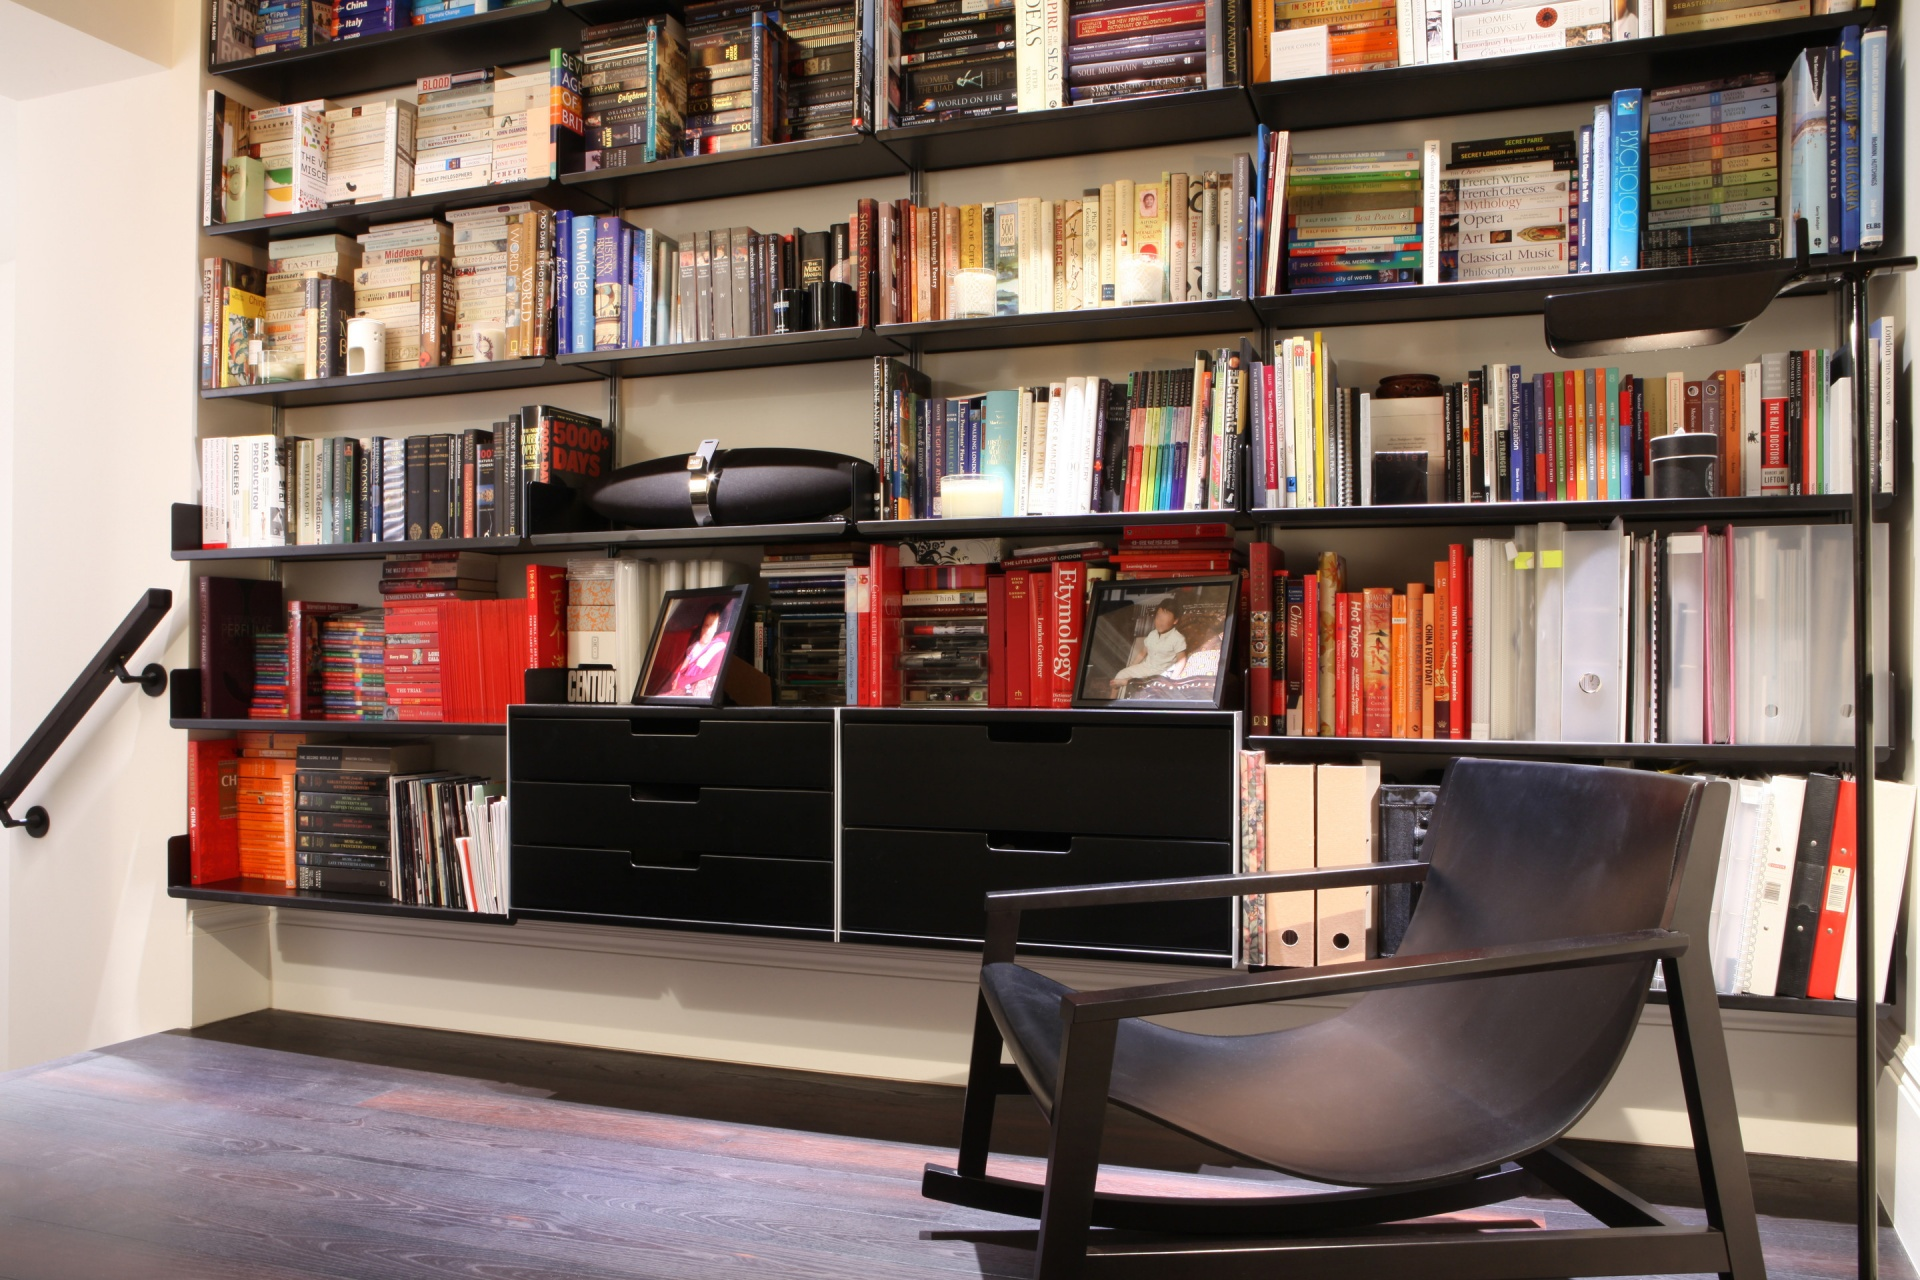 Black and red; horizontal and vertical: the peaches and cream of the shelving world